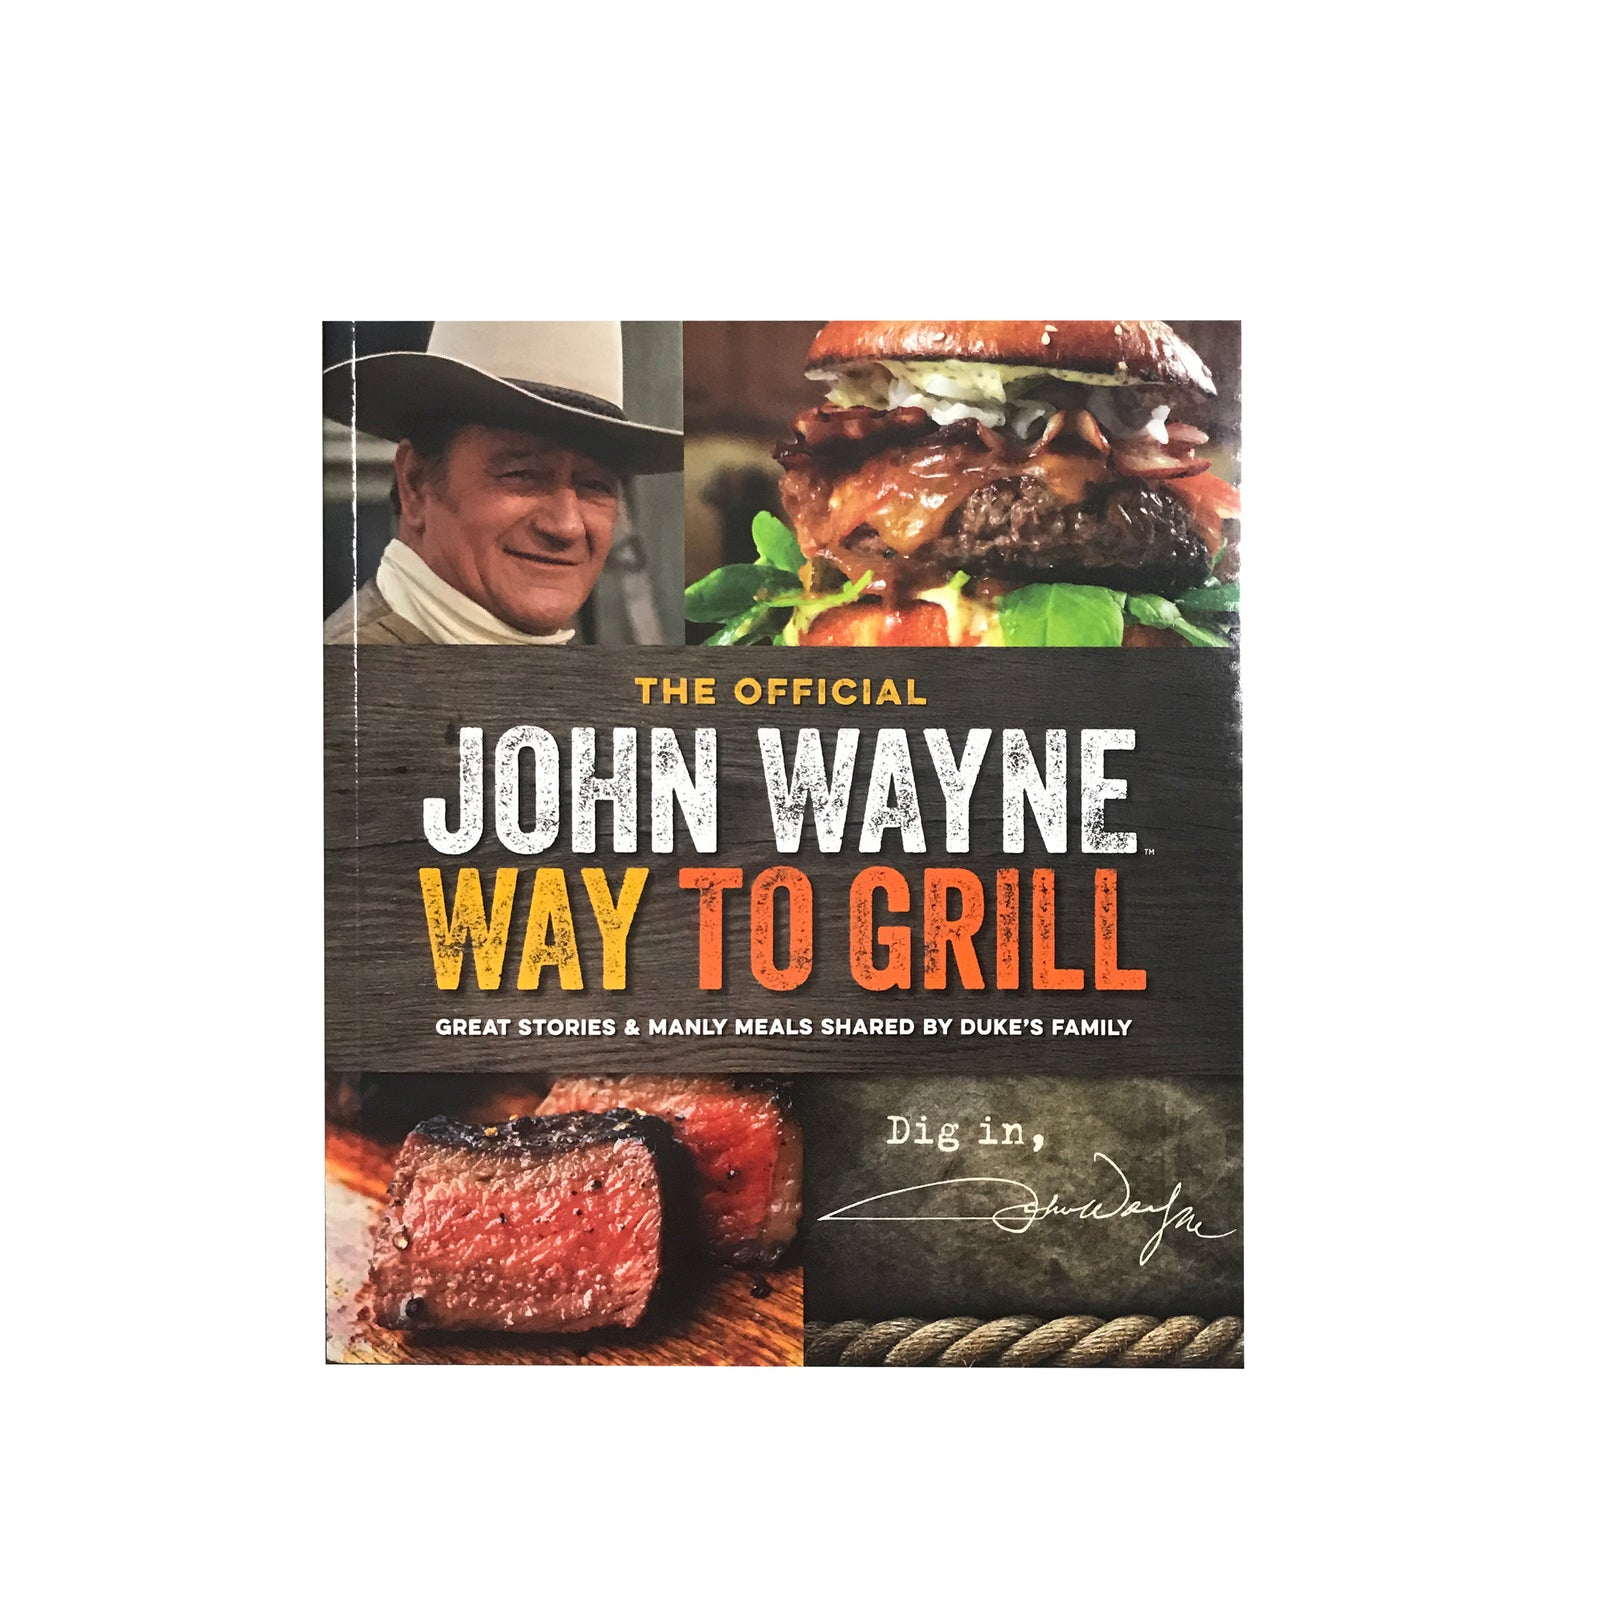 Official John Wayne John Wayne Way To Grill Cookbook